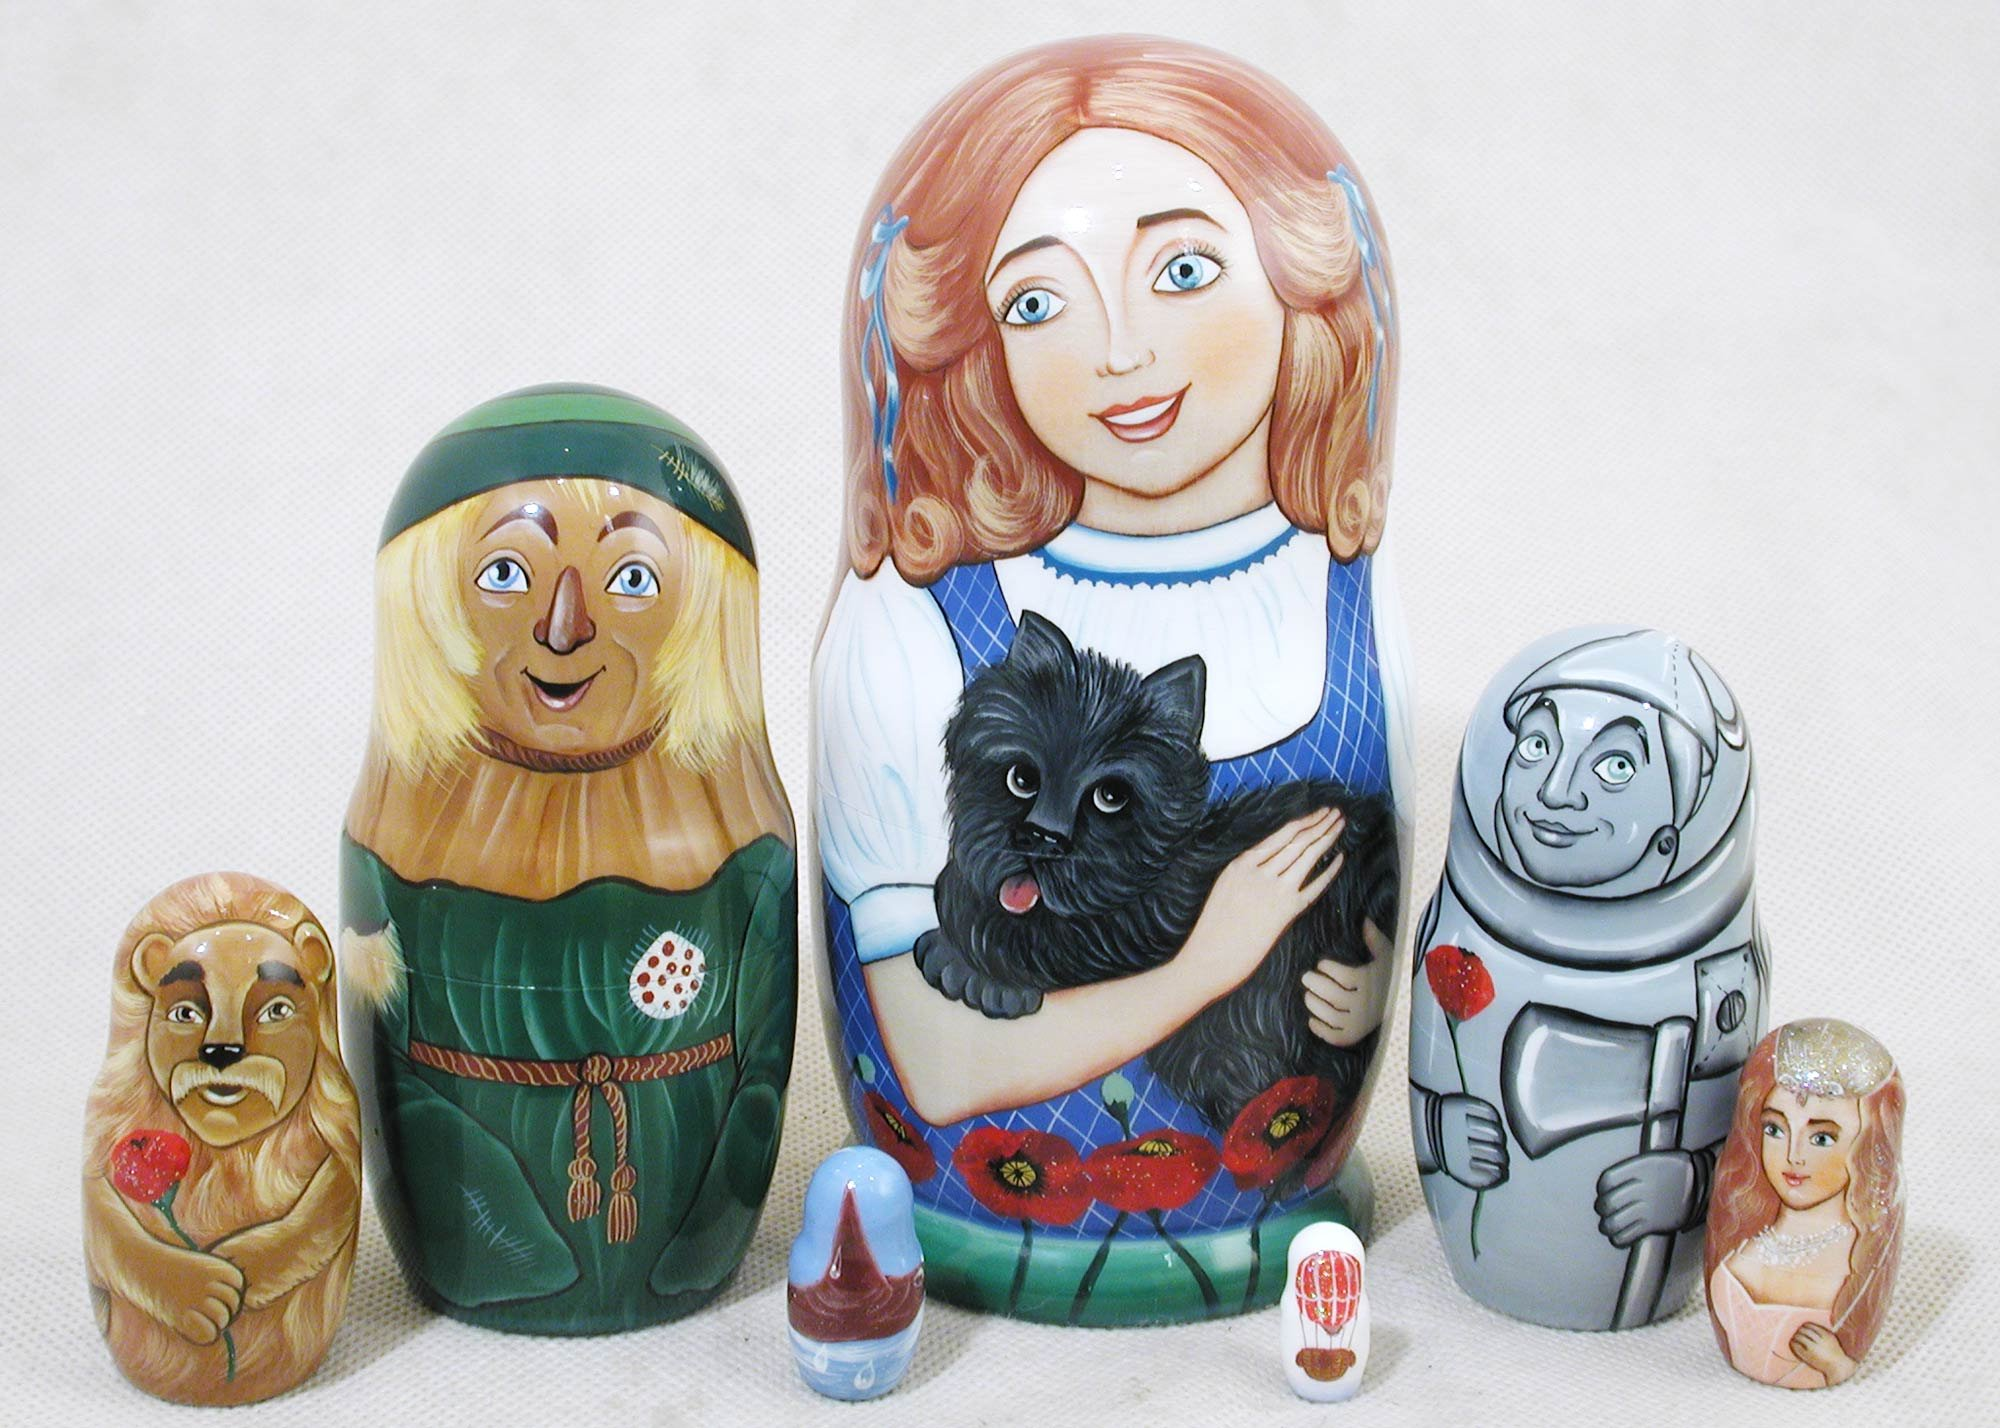 Wizard of Oz Russian Nesting Doll 7pc./6'' by Golden Cockerel (Image #1)